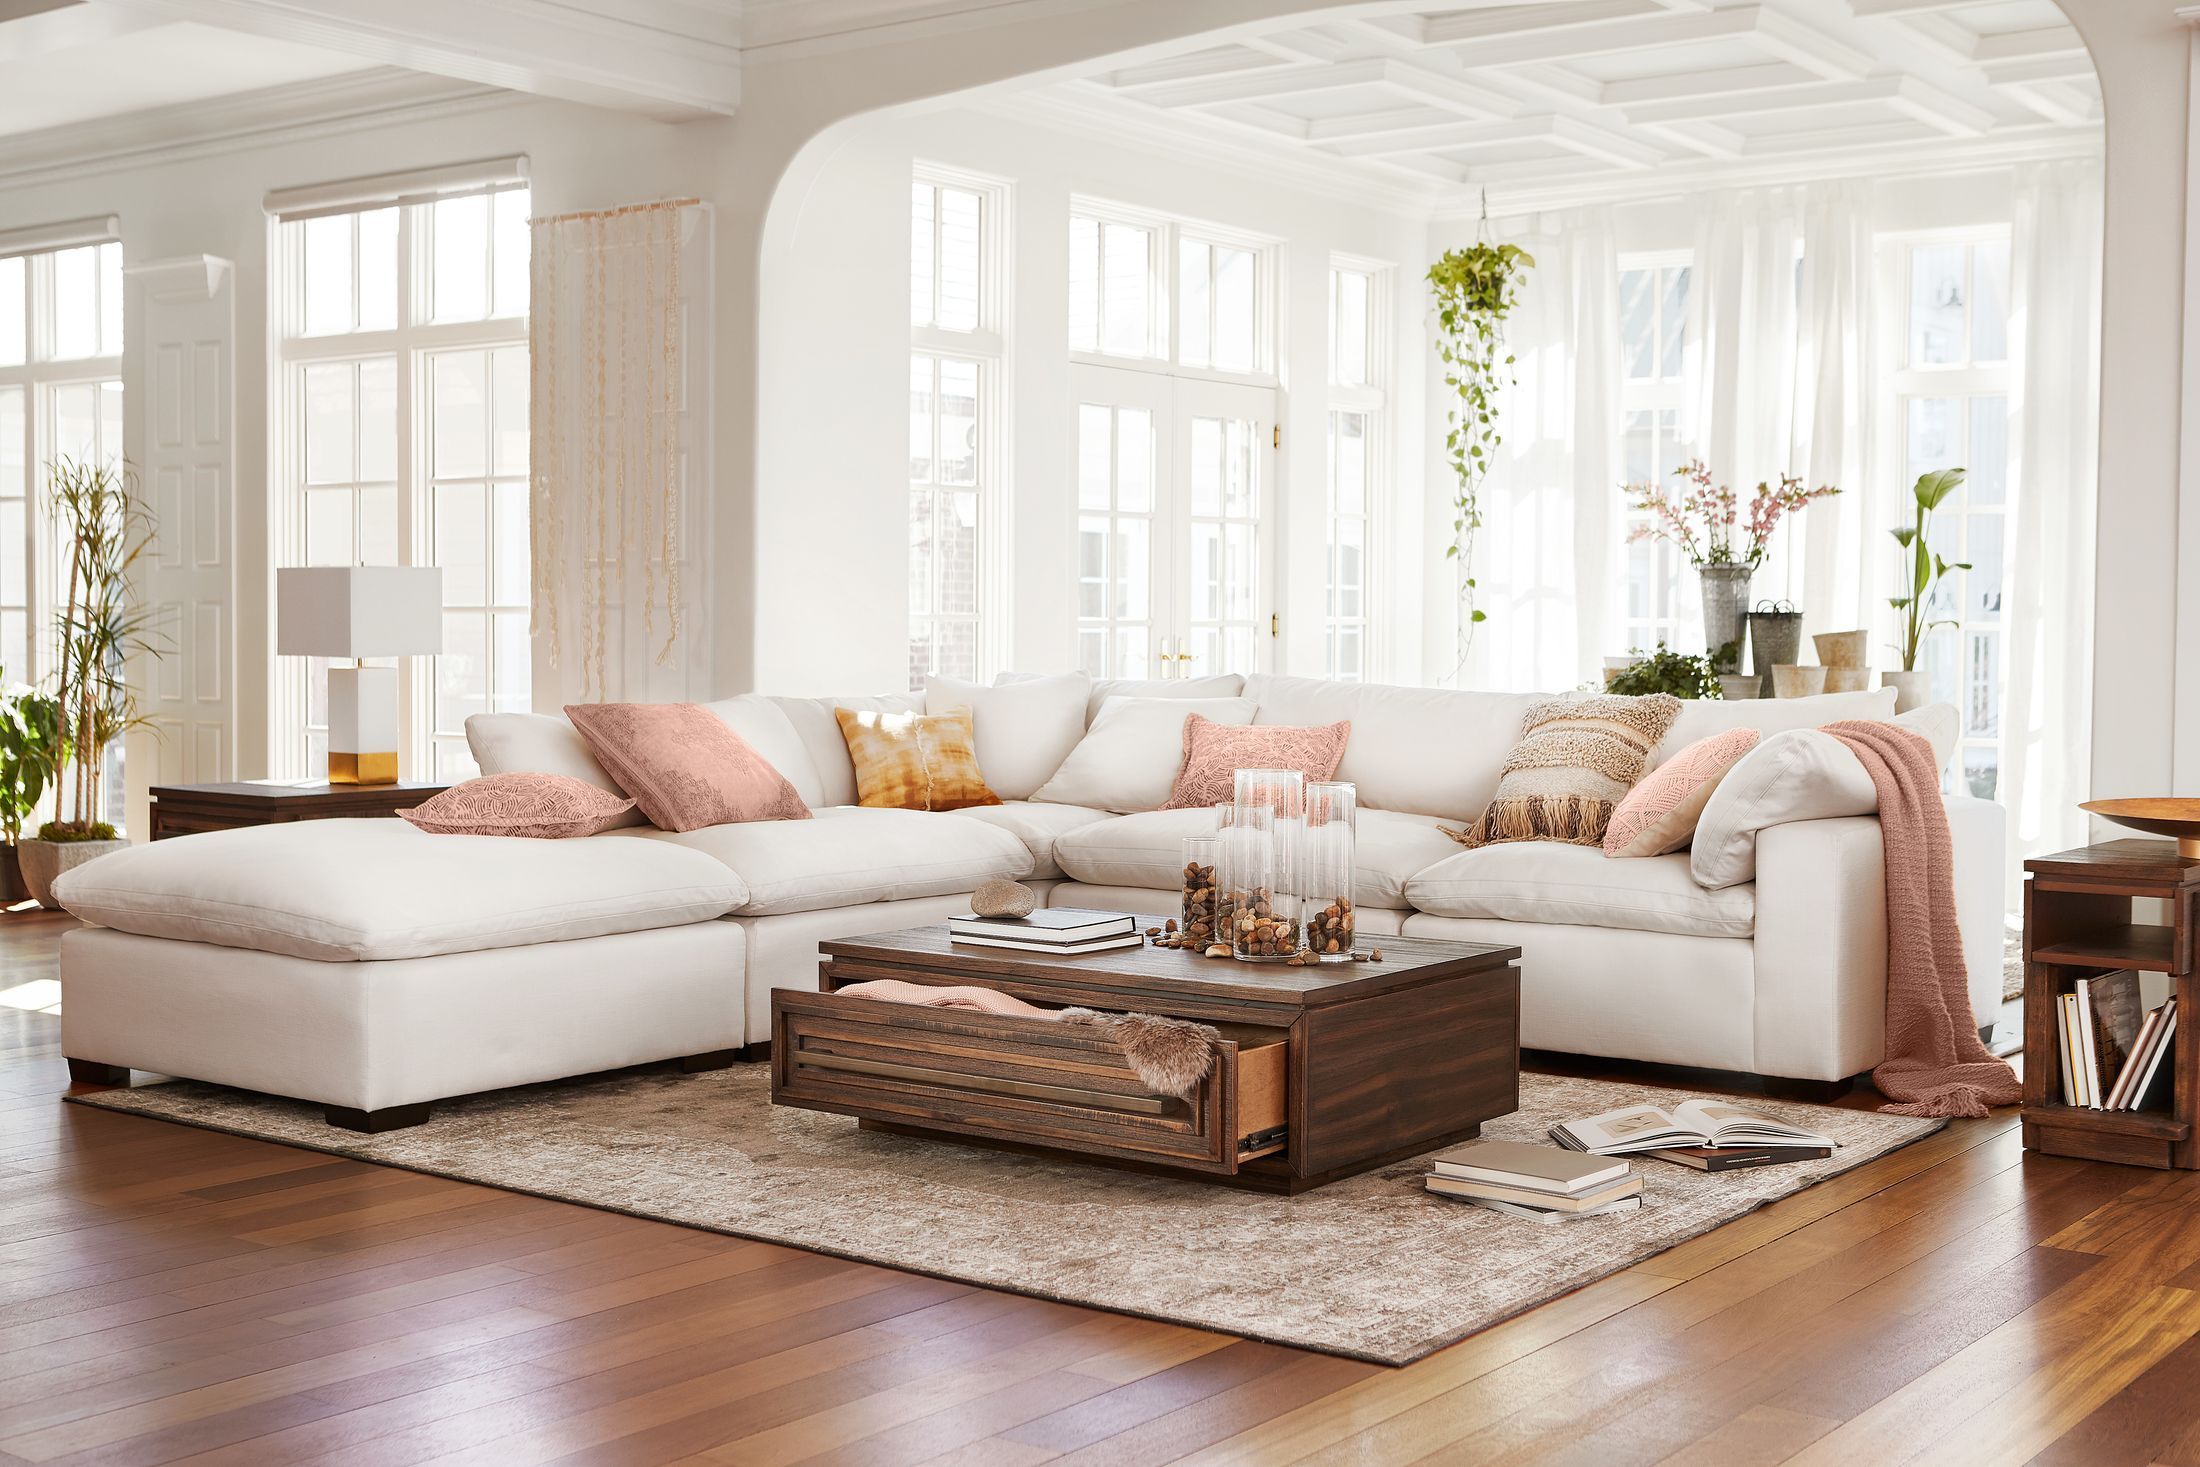 Plush 4 Piece Sectional And Ottoman Ivory In 2020 Sectional Living Room Layout White Furniture Living Room Ottoman In Living Room #ottoman #seating #living #room